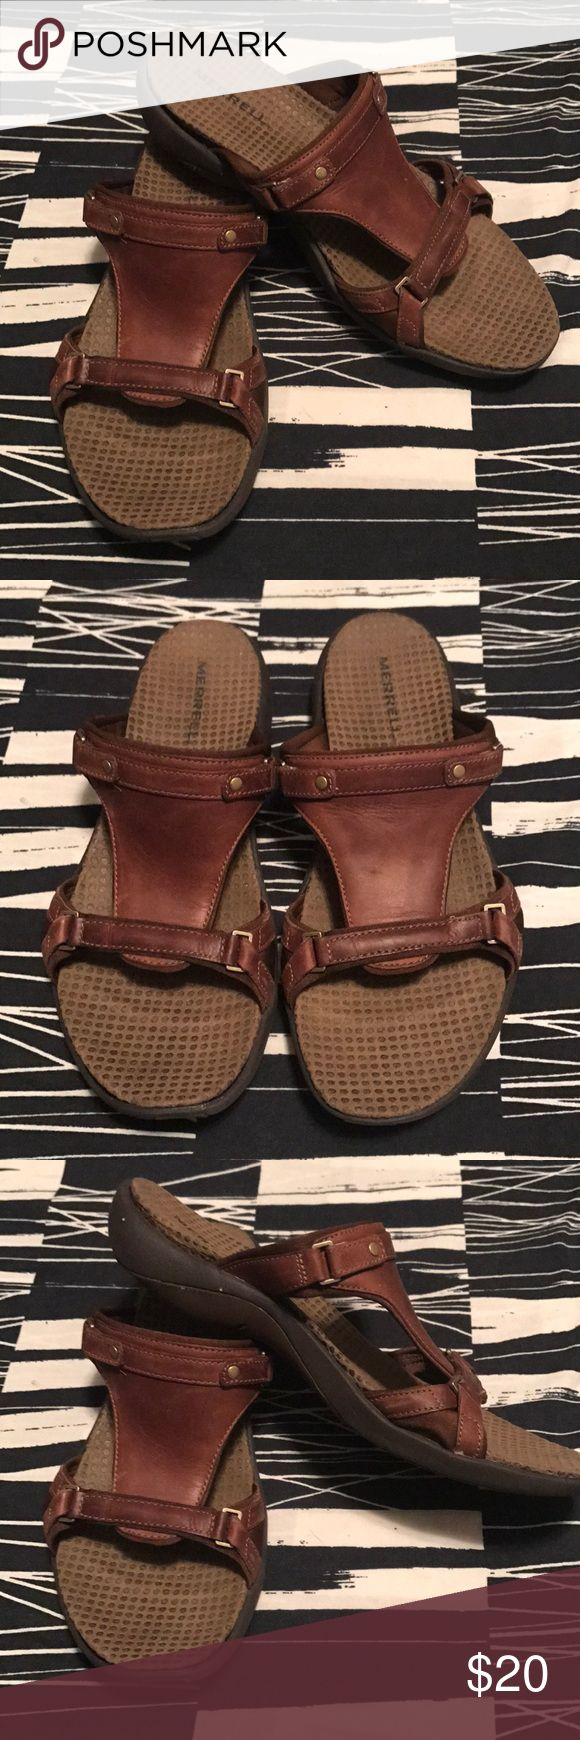 MERRELL SANDALS Gently wear MERRELL Sandals, brown leather, very comfortable, size 8 Merrell Shoes Sandals